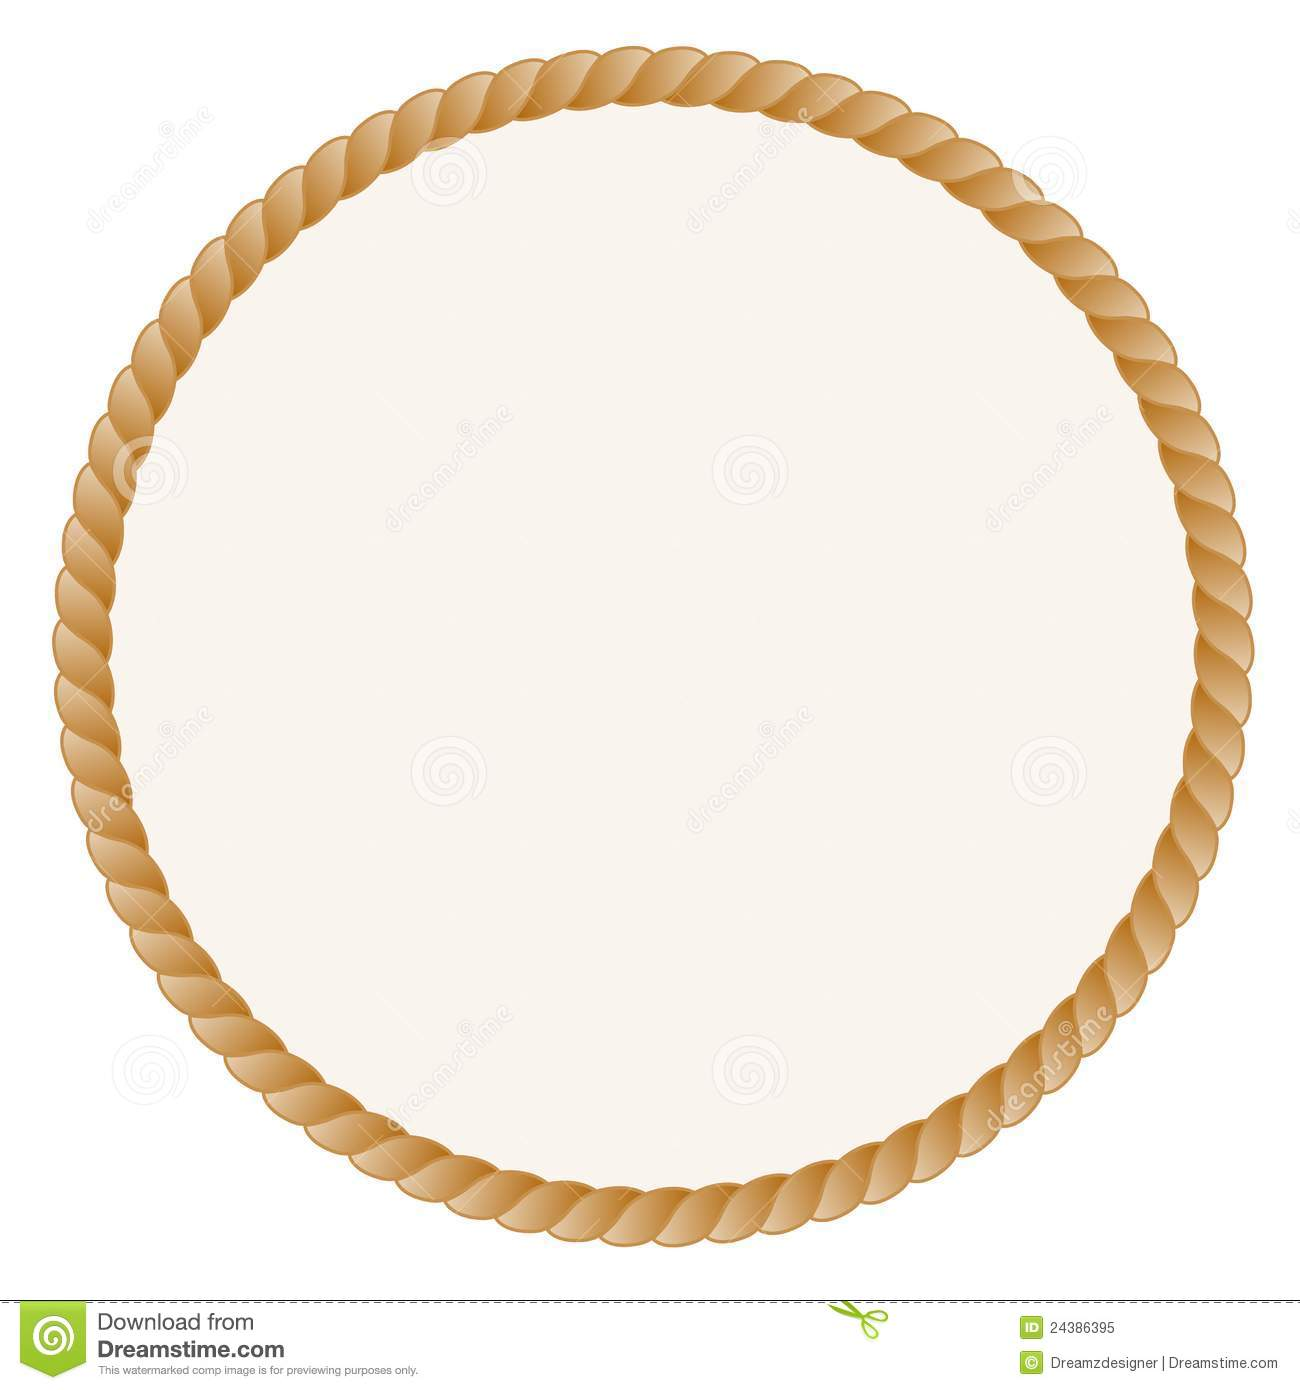 Round Frame With Rope Border Stock Illustration Image 24386395